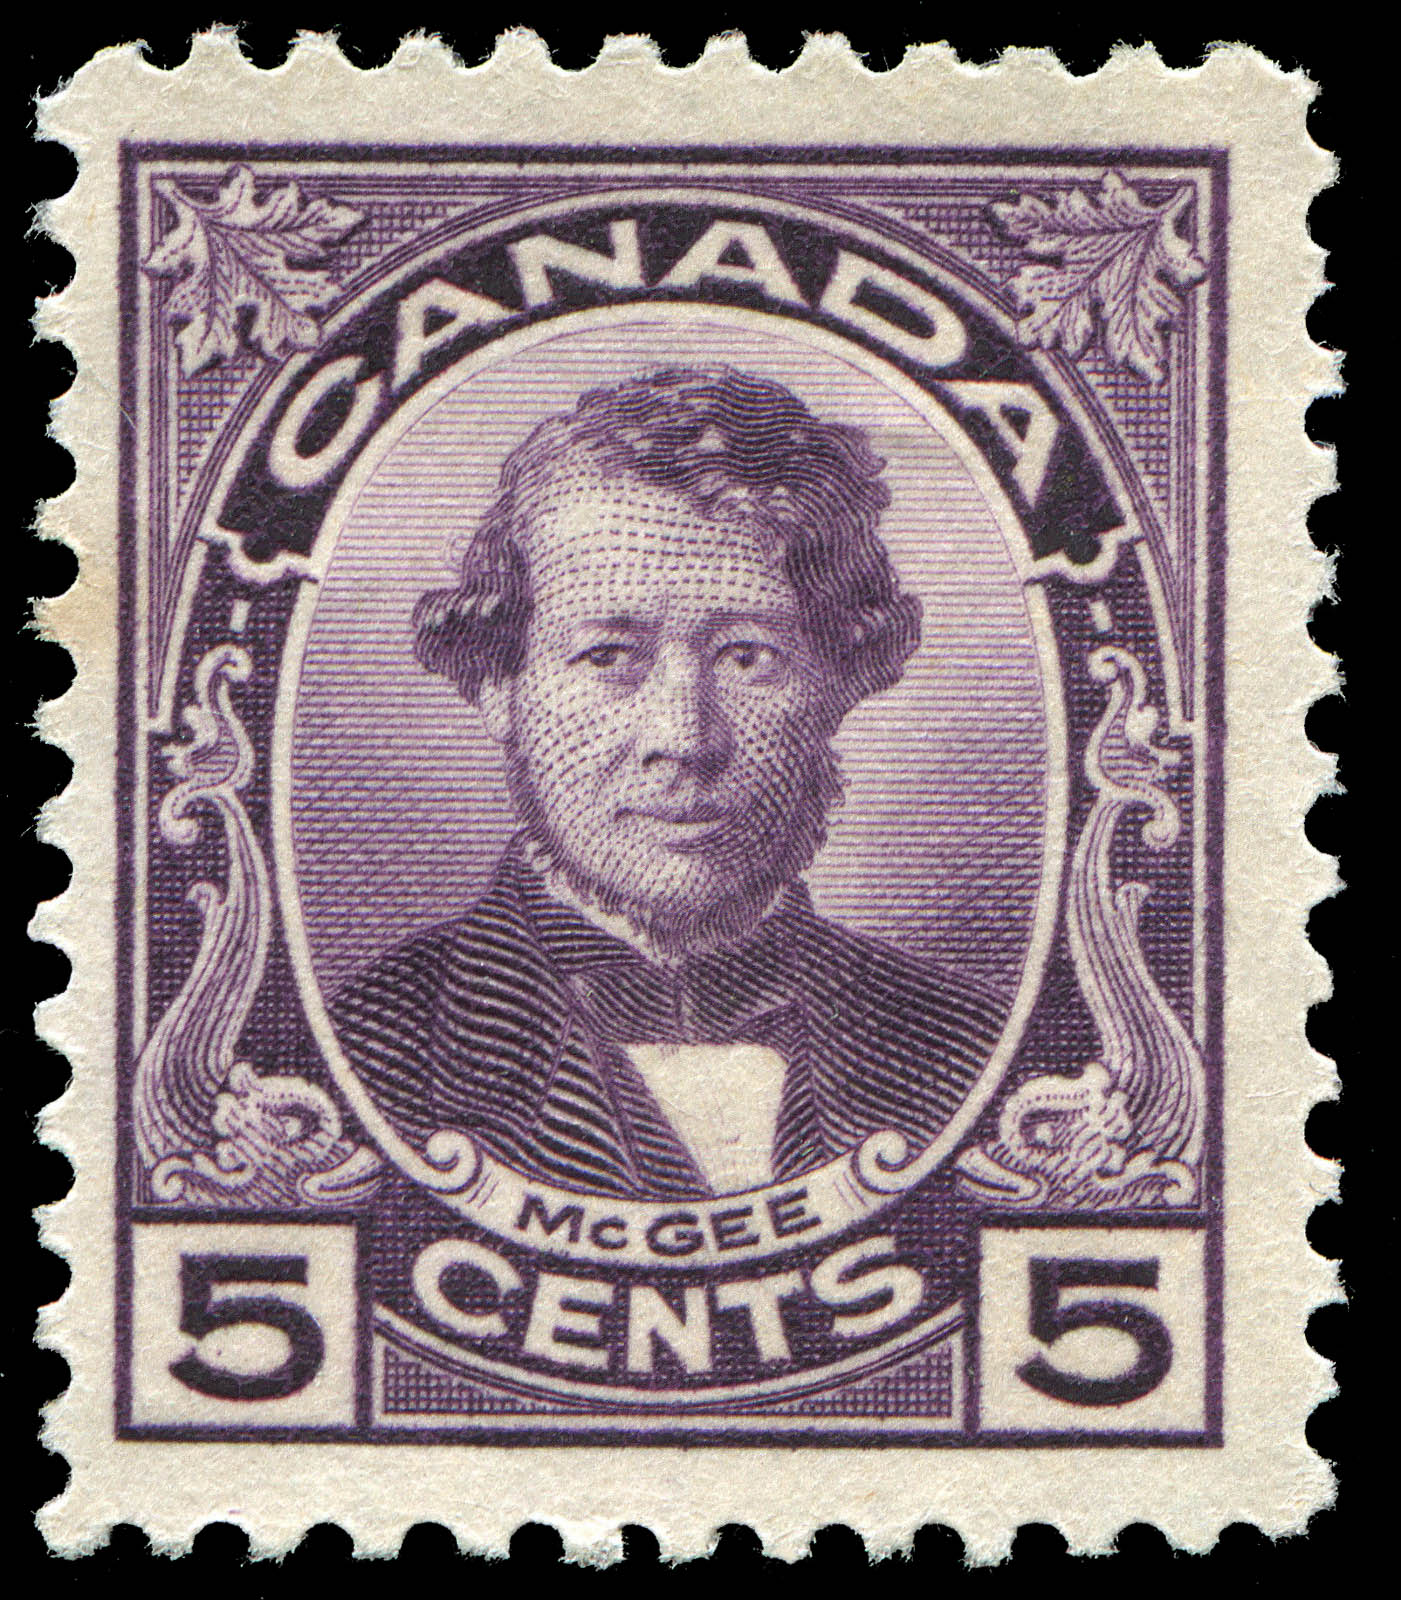 Thomas D'Arcy McGee Canada Postage Stamp